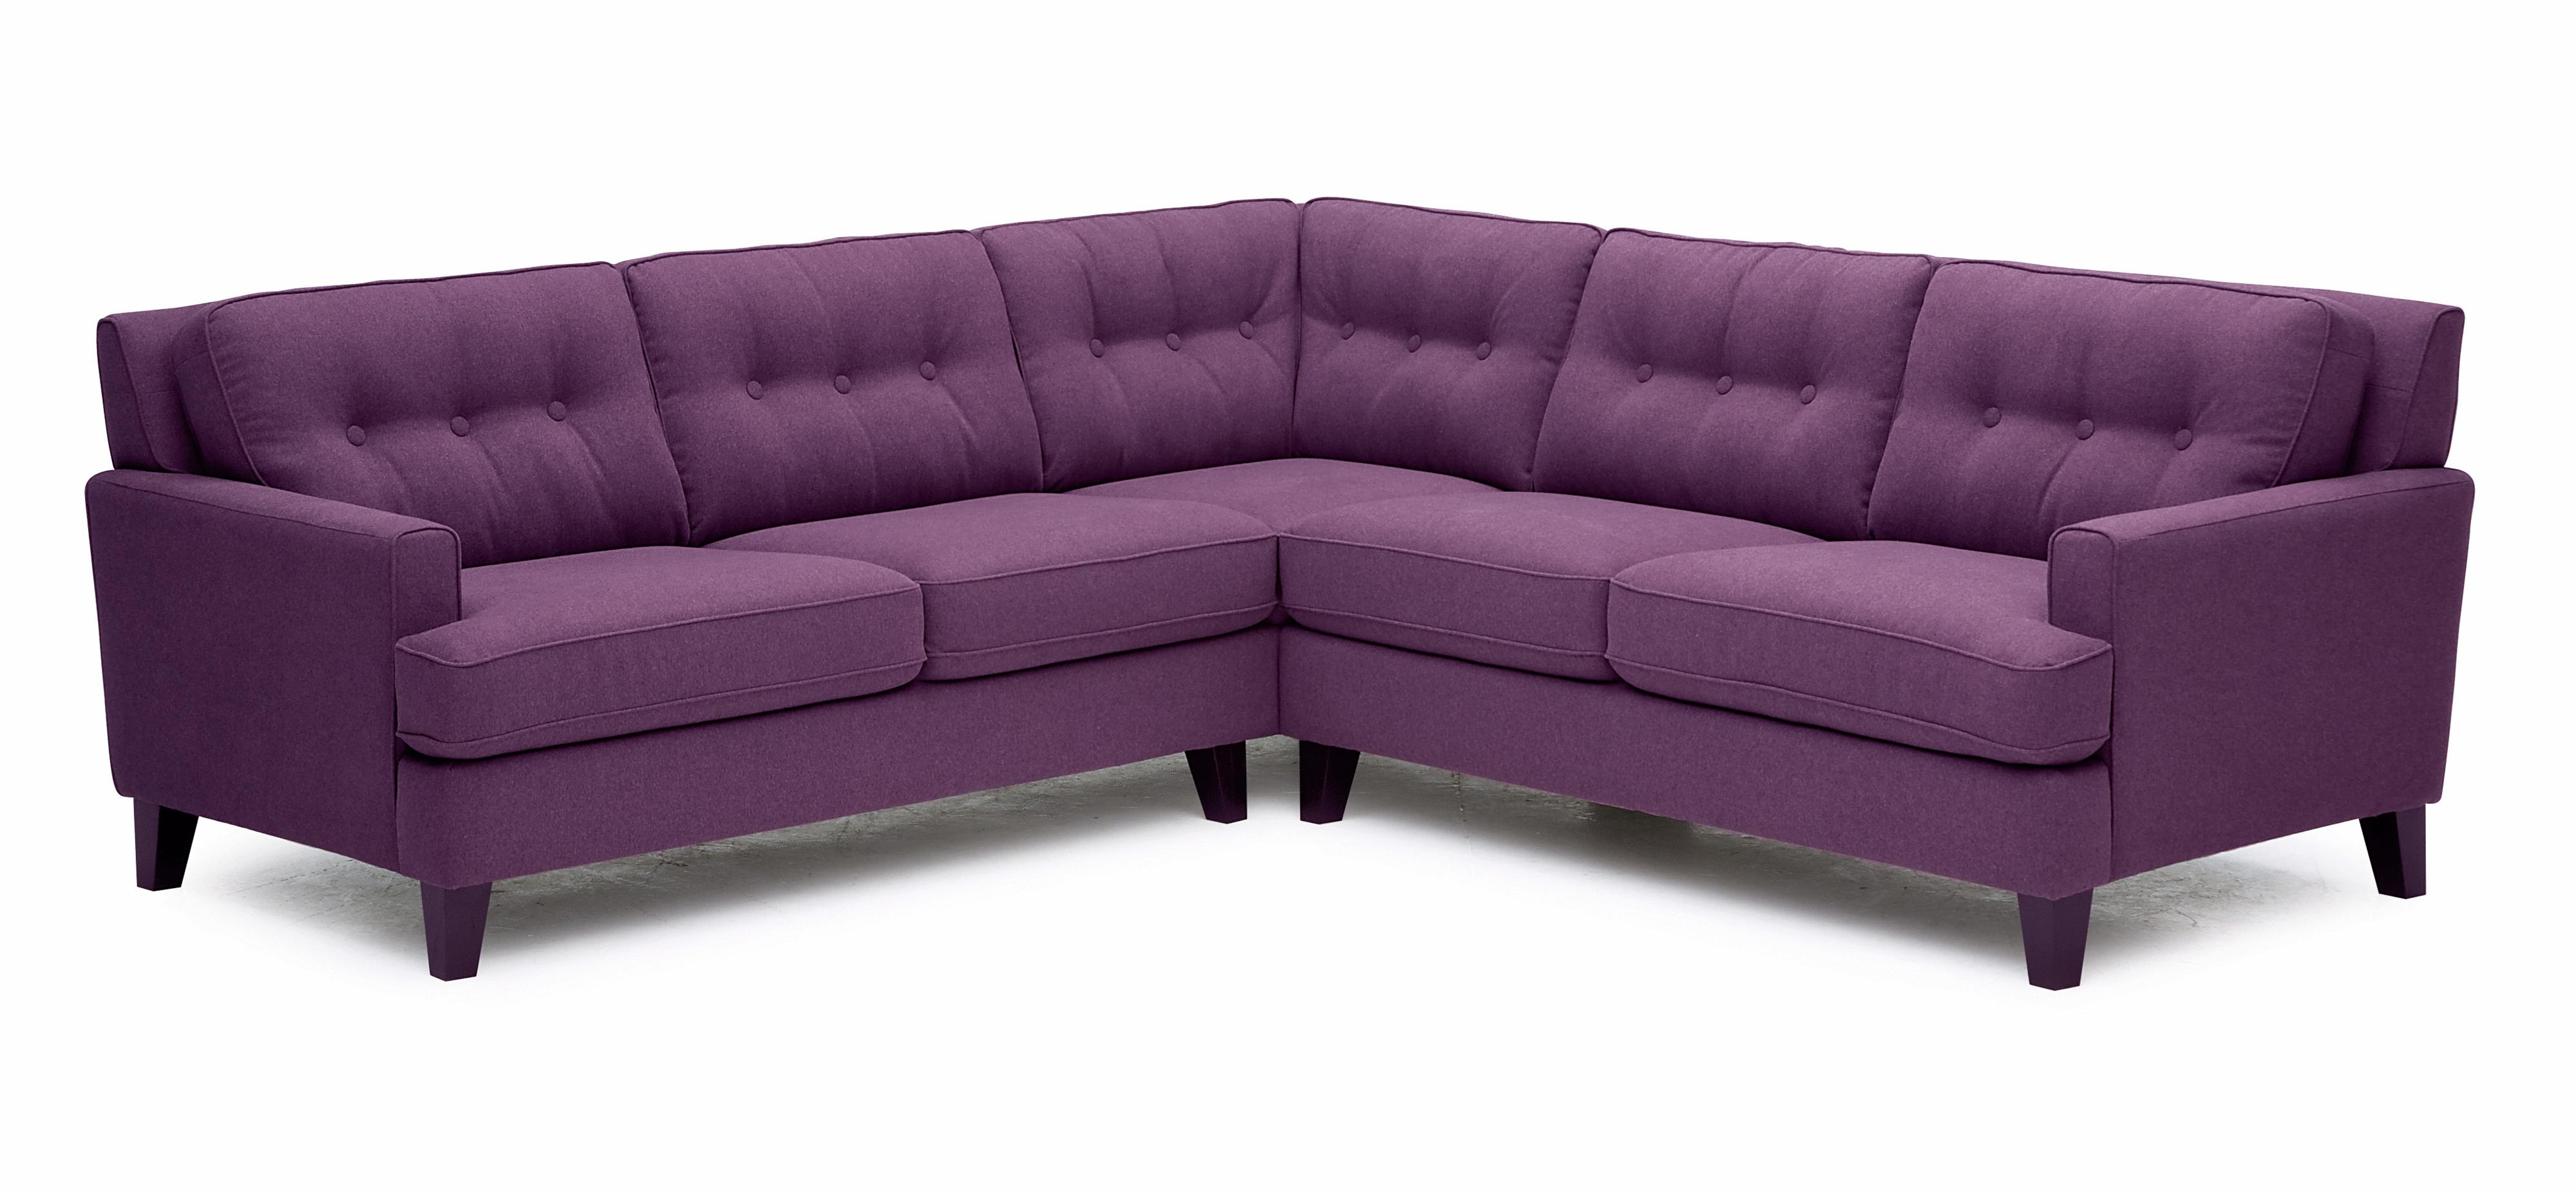 Barbara Two Piece Sectional Sofa with LHF Loveseat by Palliser at SuperStore